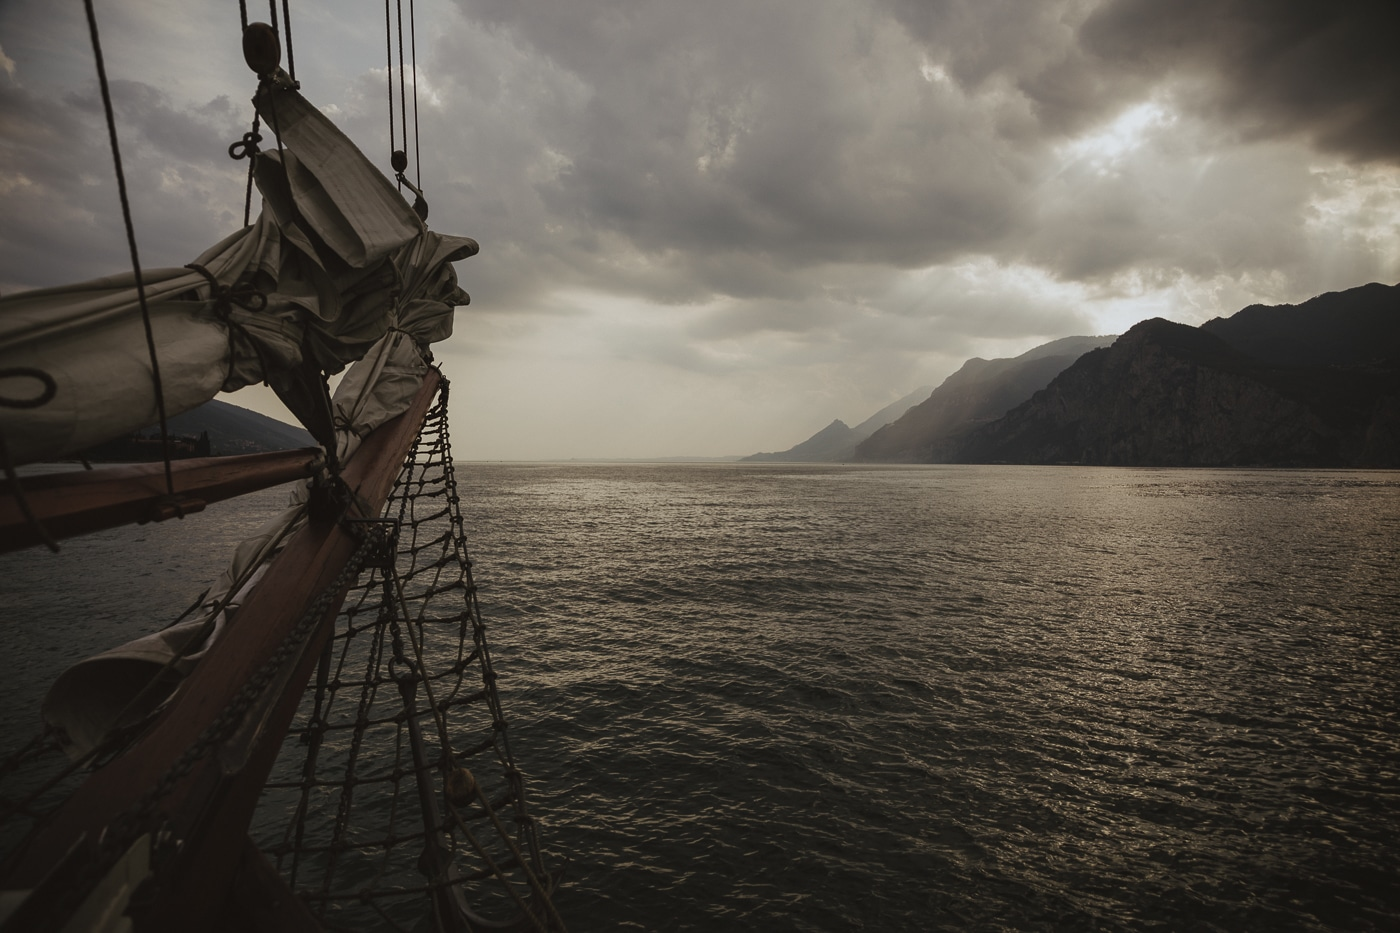 front of yacht with sails and a net, floating on lake garda in italy with dark moody clouds and mountains in the background by Joshua Wyborn